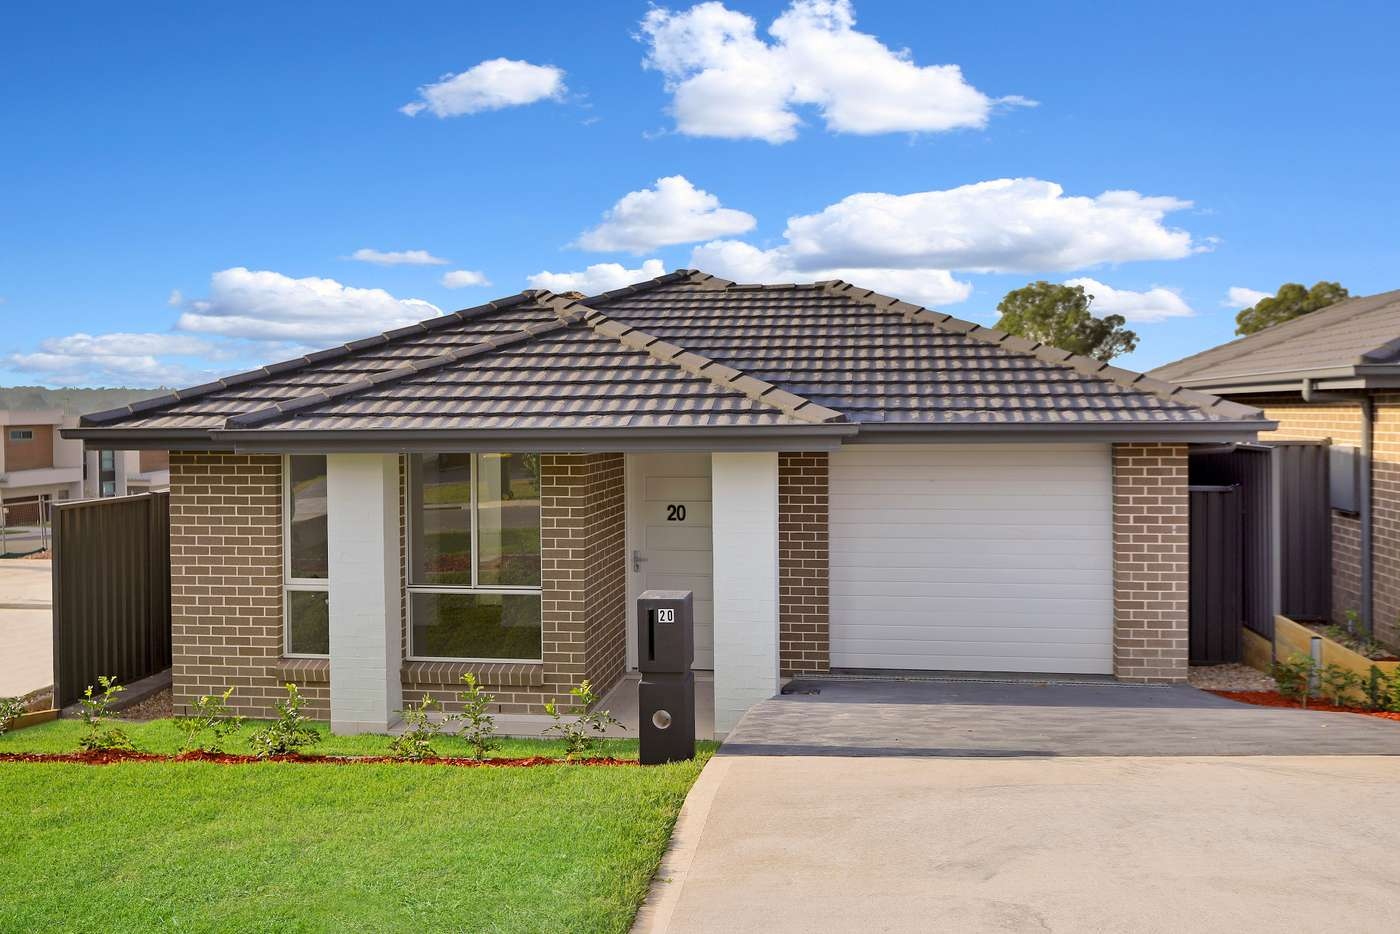 Main view of Homely house listing, 20 Matthias St, Riverstone NSW 2765